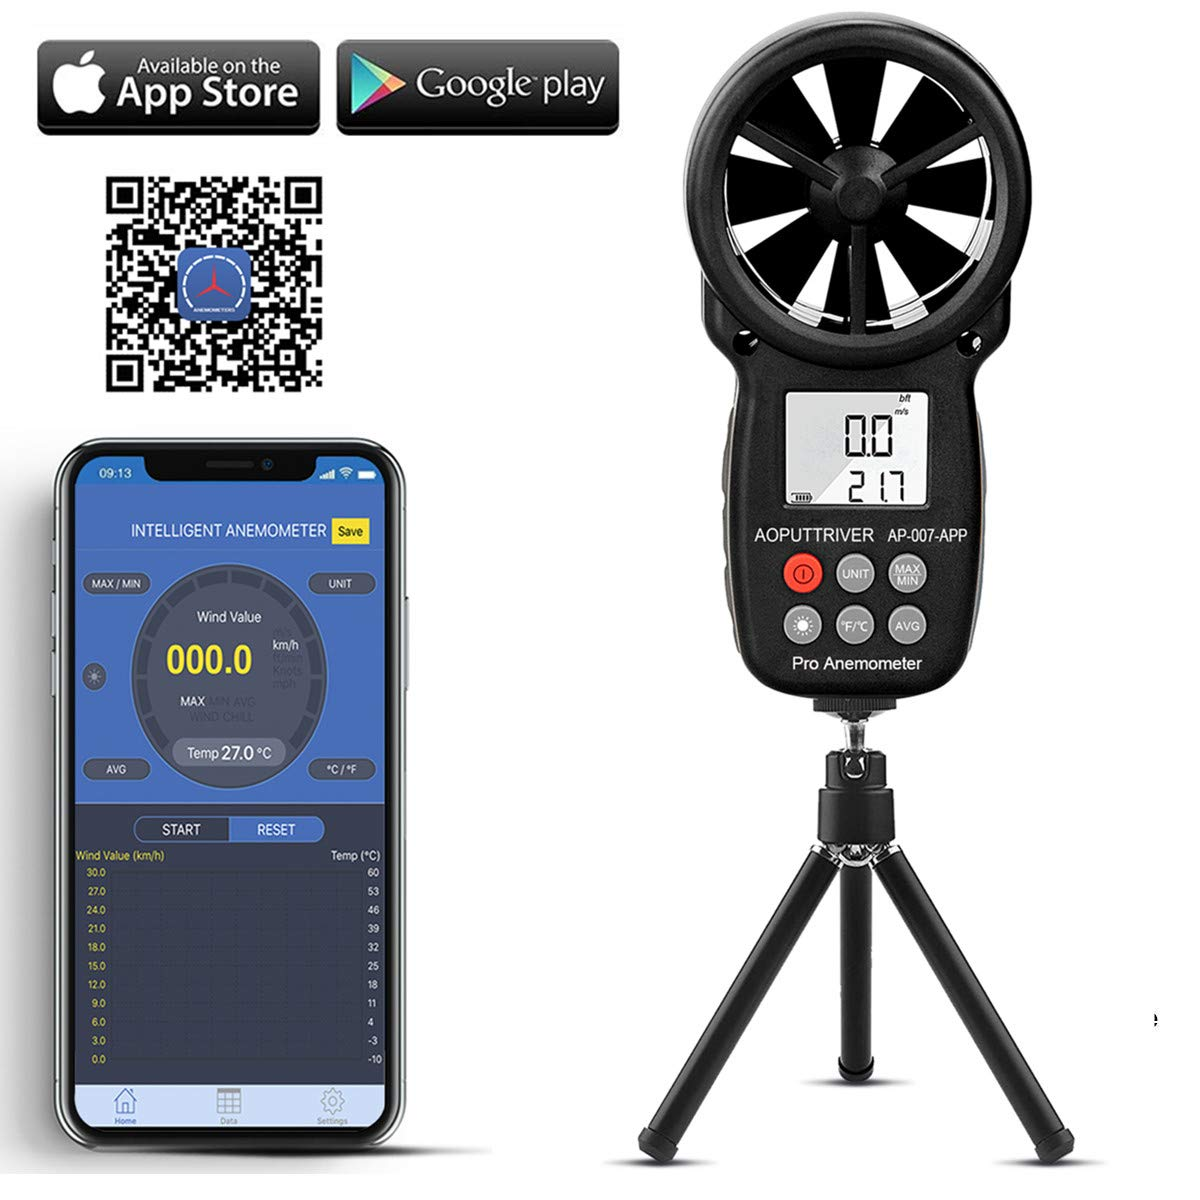 AOPUTTRIVER Digital Anemometer,APP Wind Meter,LCD Wind Speed tester for Measuring Wind Speed, Temperature and Wind Chill with Backlight and Max/Min (007-APP)